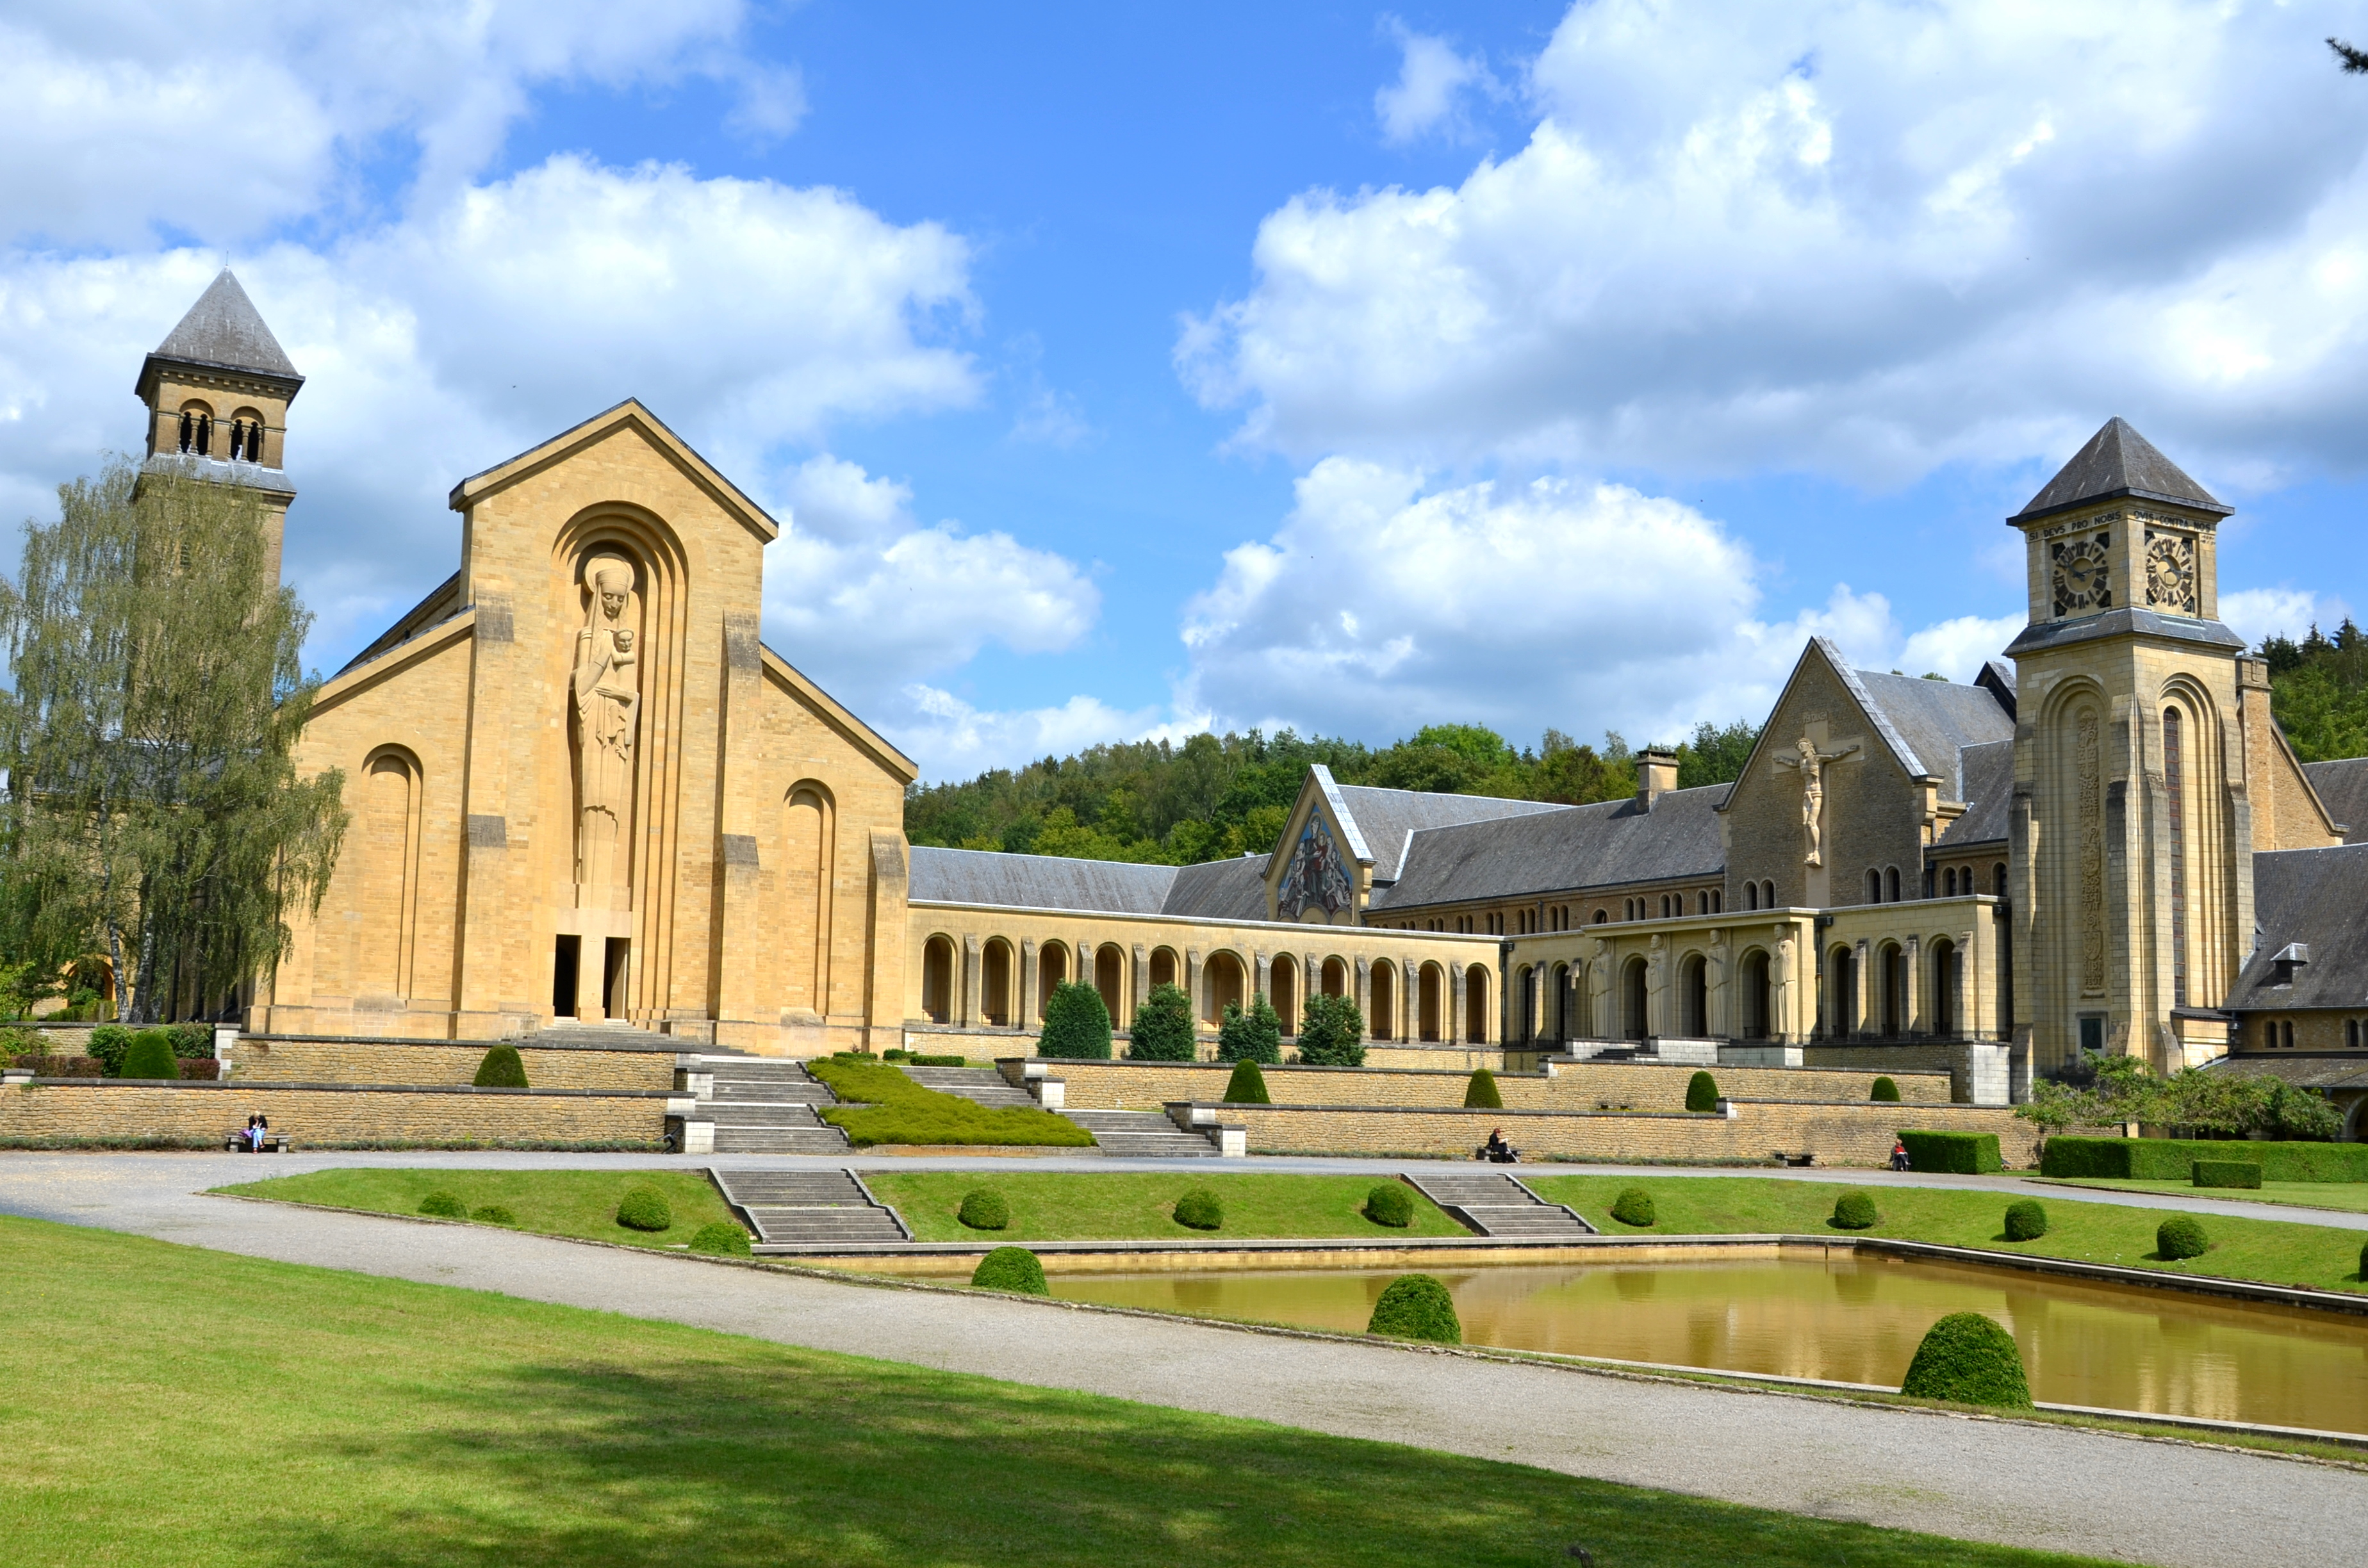 L'abbaye Notre-Dame d'Orval